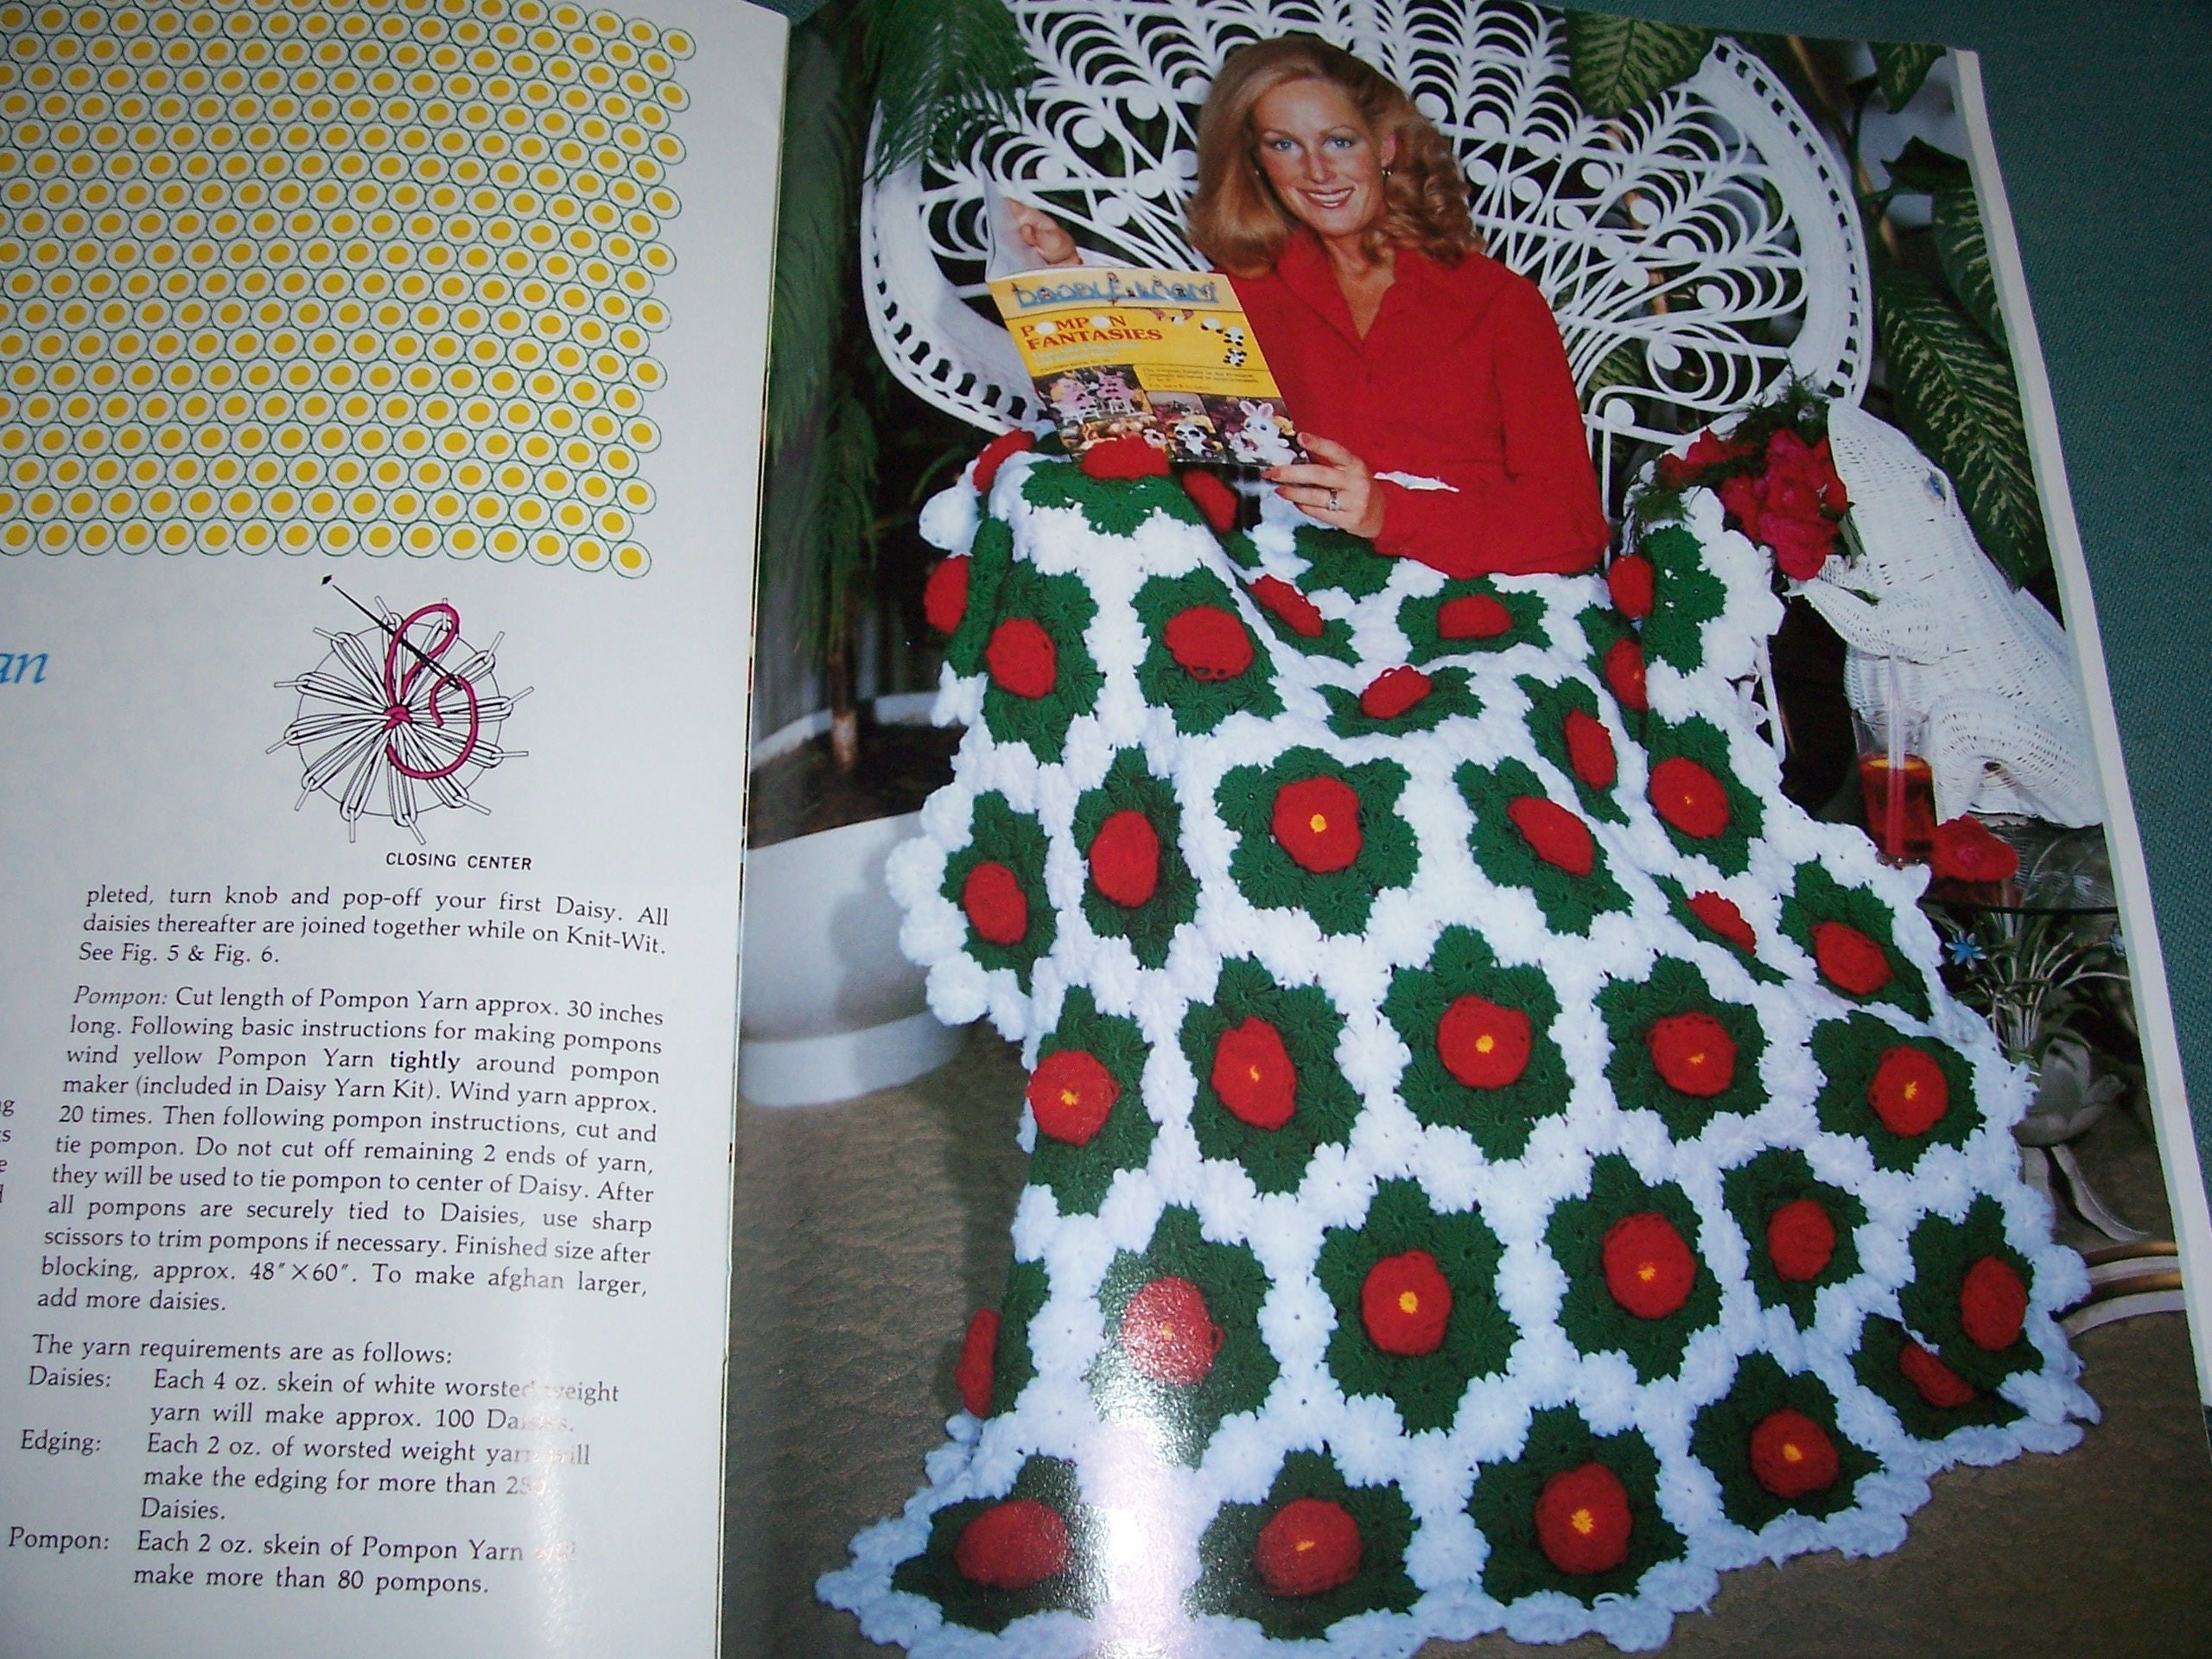 Vintage knit wit knitting tools afghan crochet patterns daisy 800 shipping bankloansurffo Images